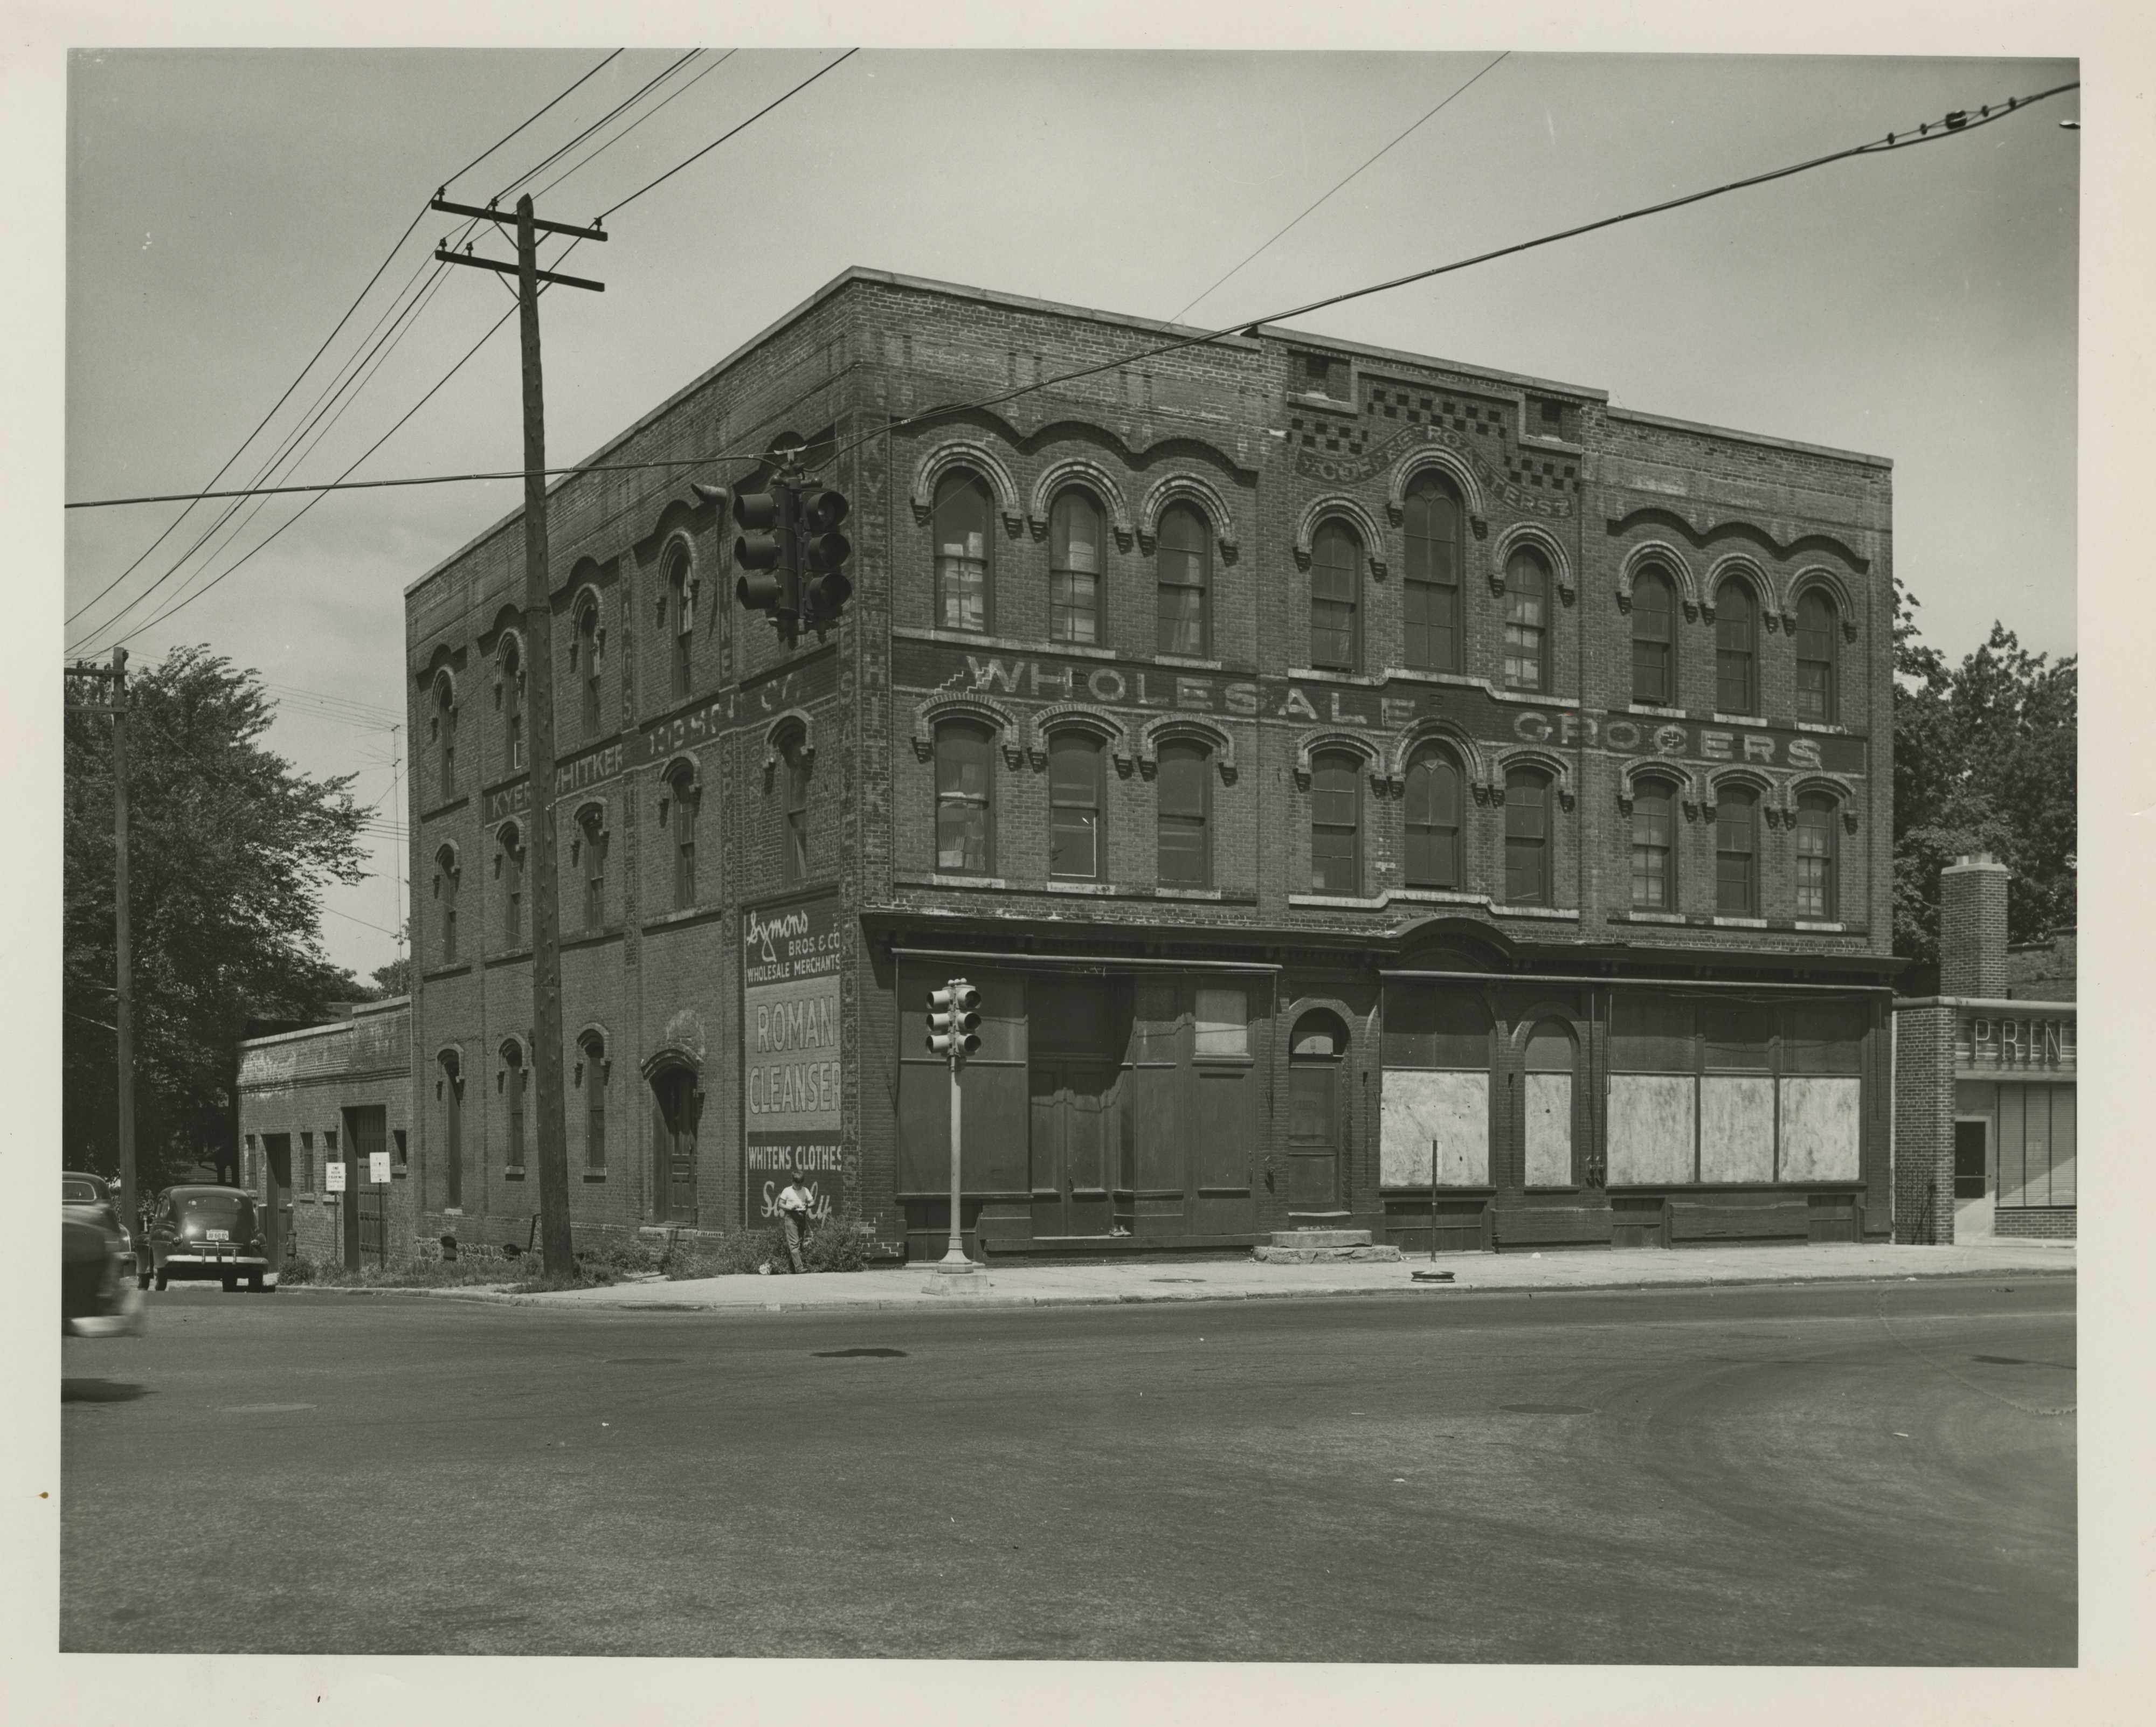 Kyer-Whitker Building, undated image